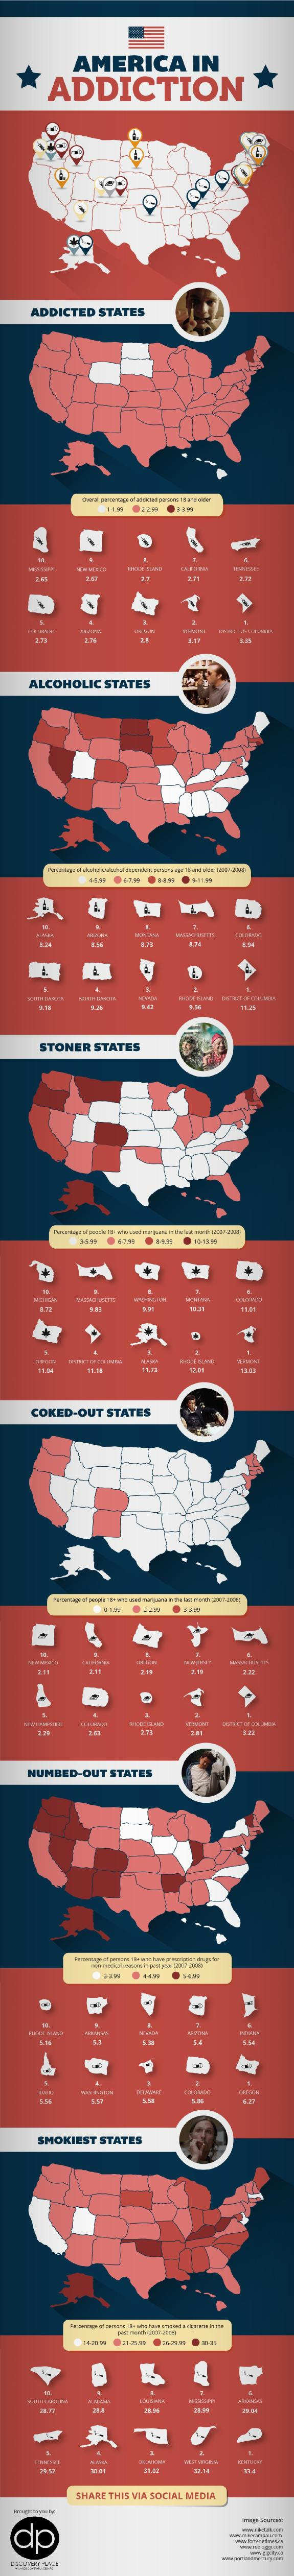 Infographic: America in Addiction